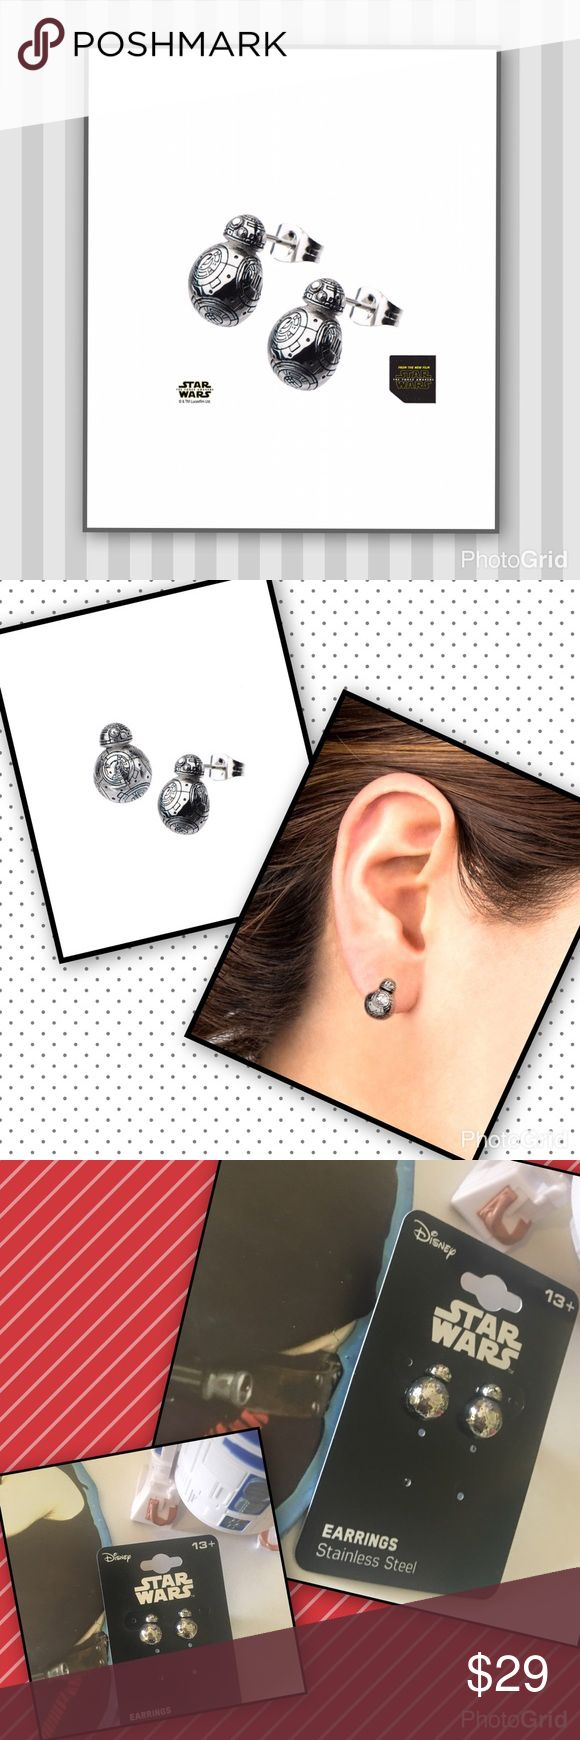 """BB 3-D Earrings You loved the movies now you can carry on through space and time with Star Wars BB-8 3 D stud earrings.  From a galaxy far far away 0.38"""" L stainless steel lob decor. Princess Padme would surly approve! Disney Jewelry Earrings"""